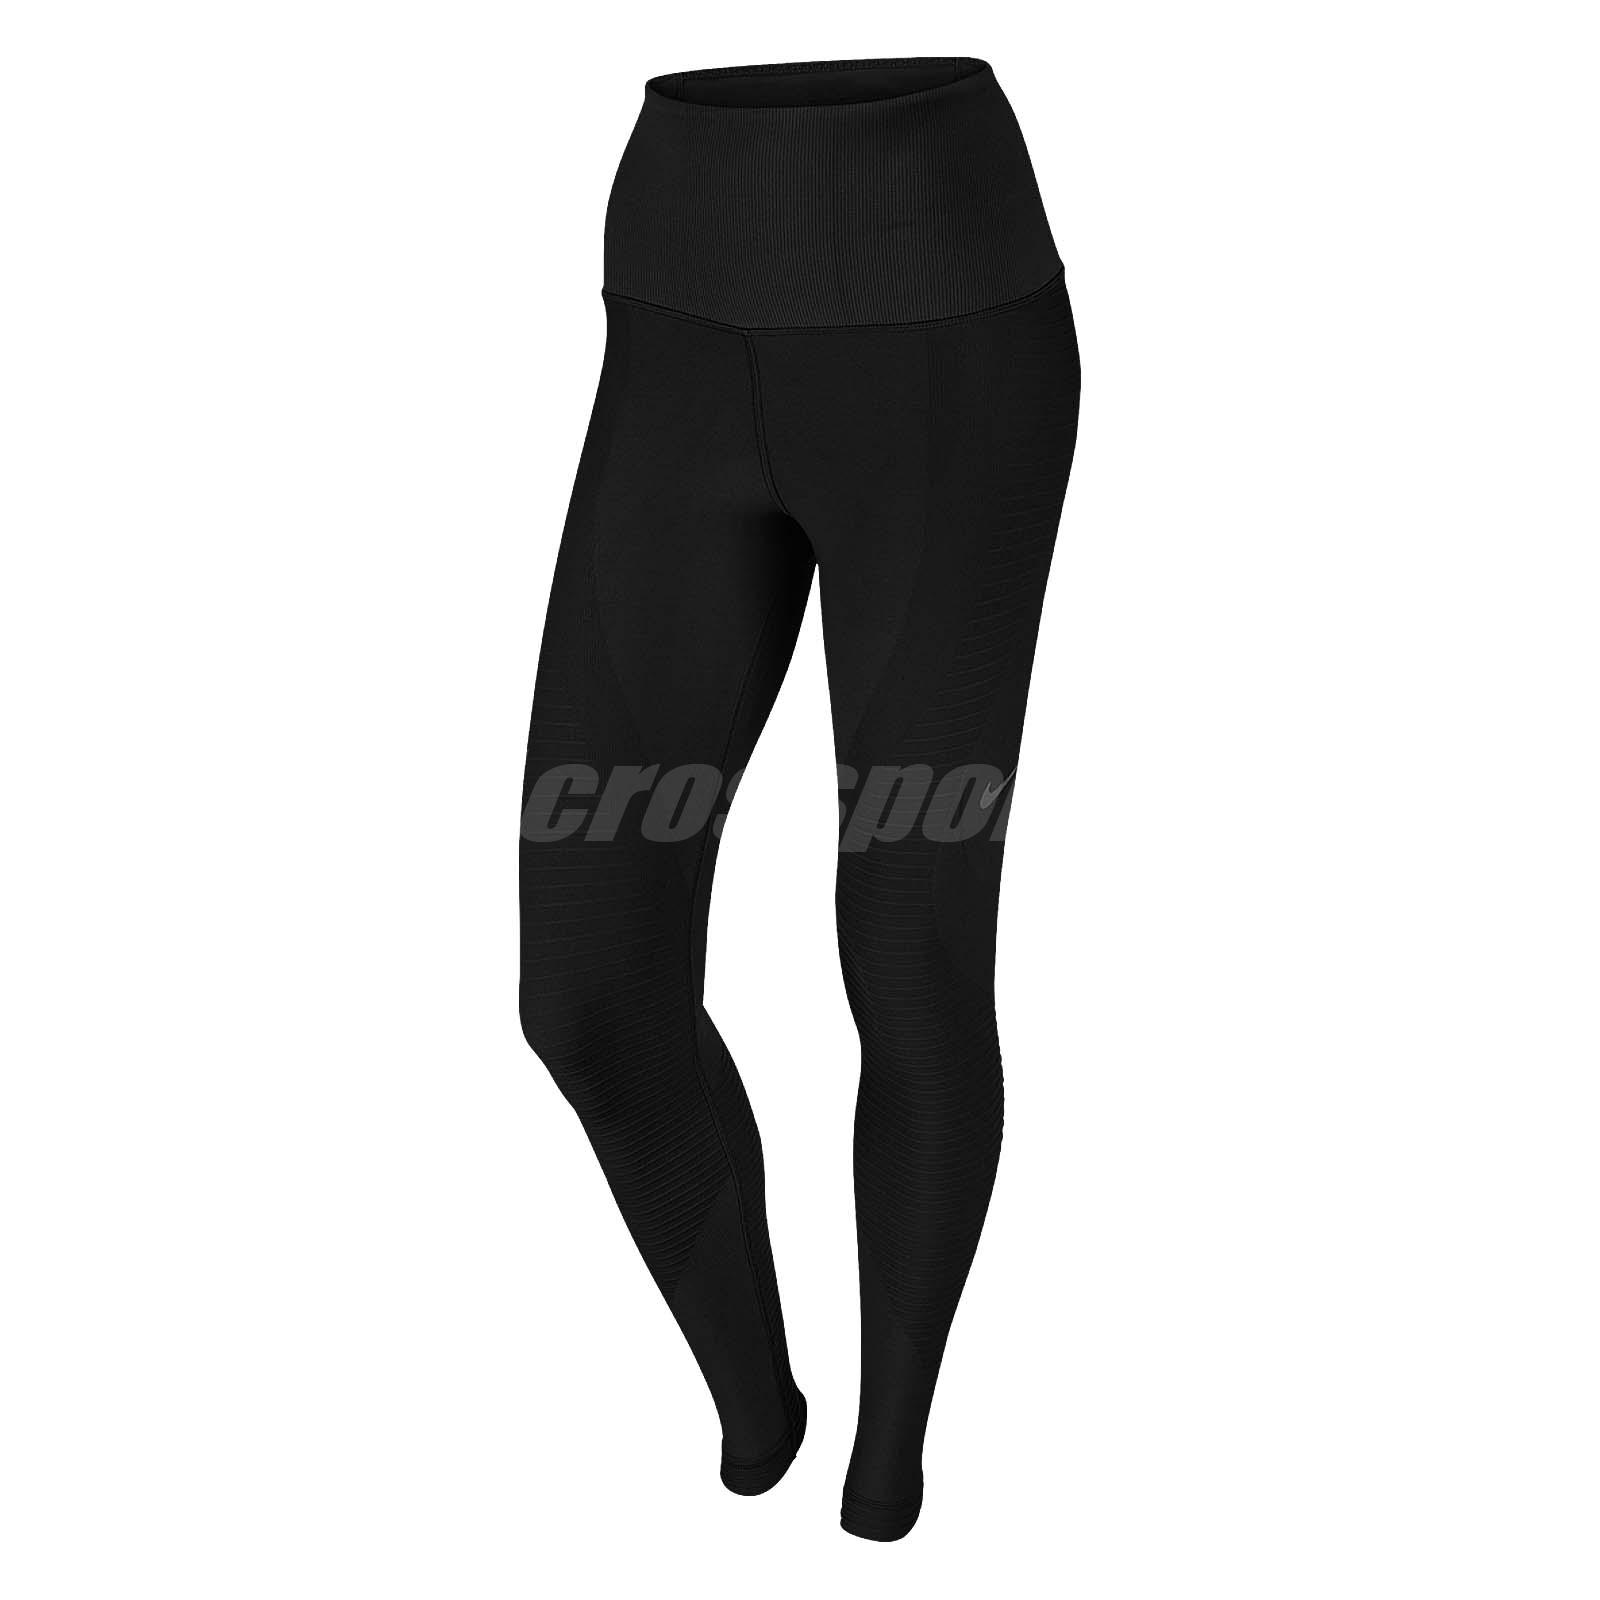 41e97d16f1 Nike Women Zoned Sculpt Training Tights Training Workout Sports Black  725154-010